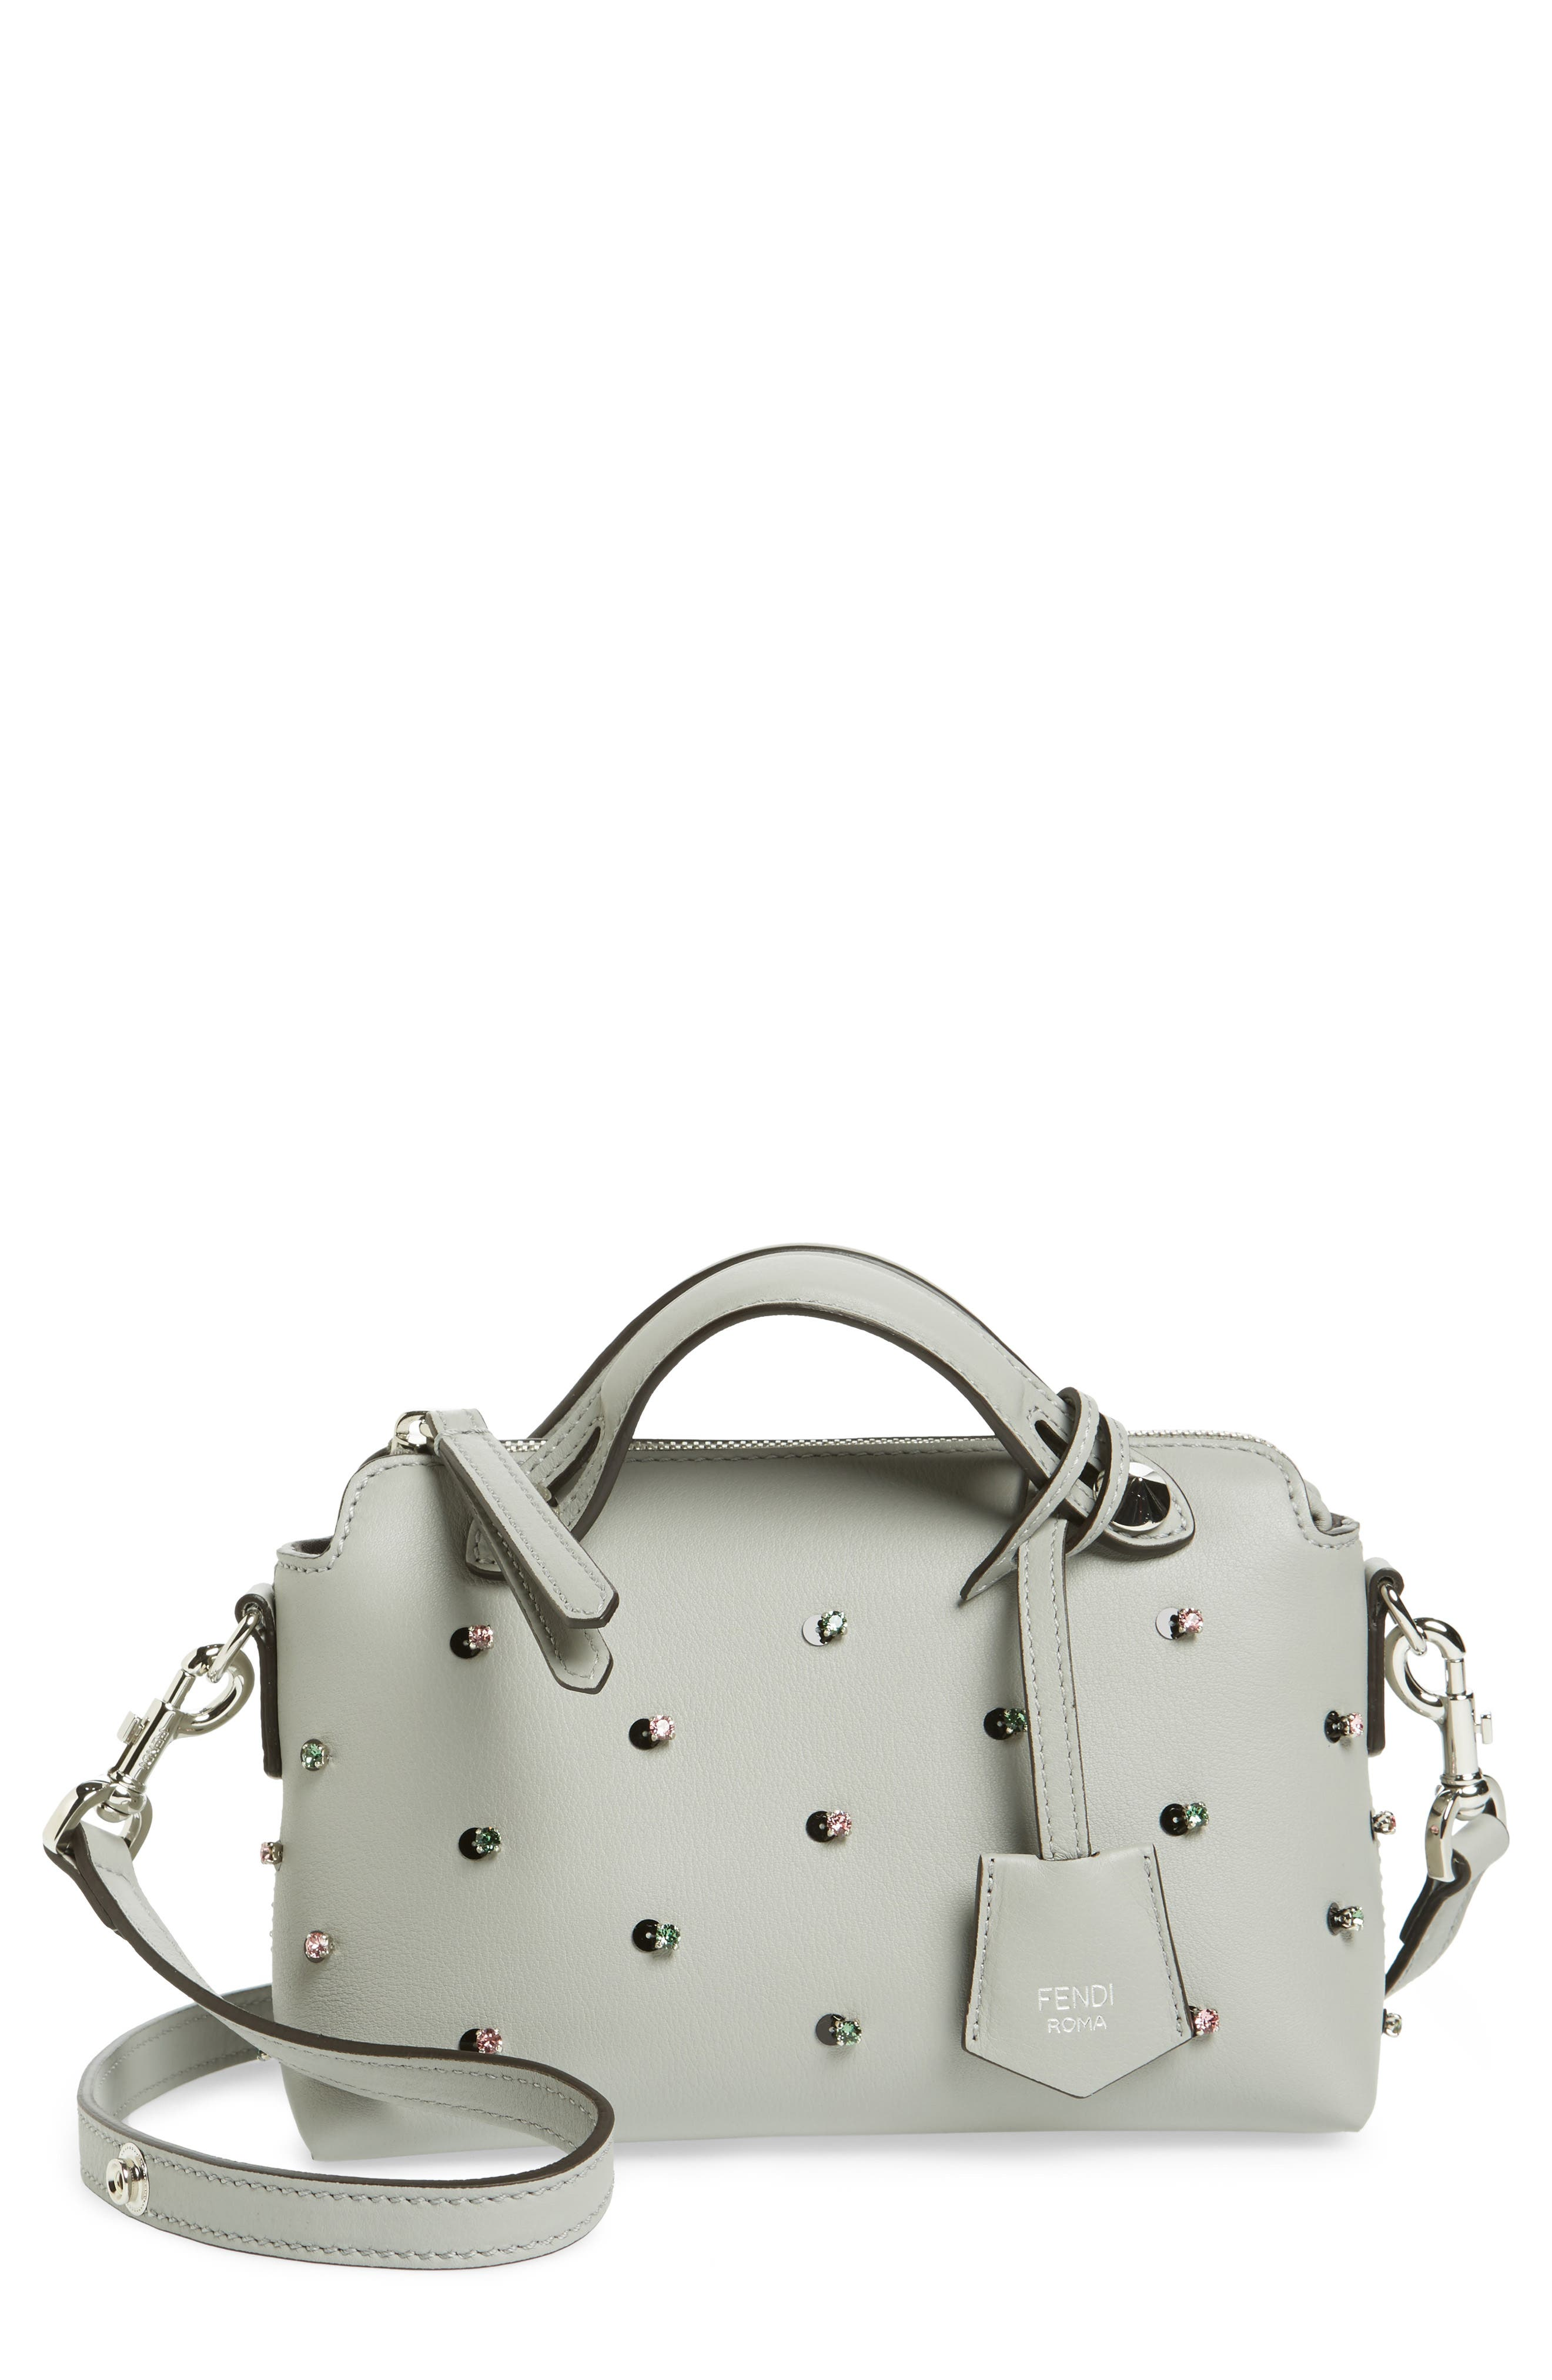 Main Image - Fendi Mini By the Way Crystal Embellished Convertible Leather Crossbody Bag